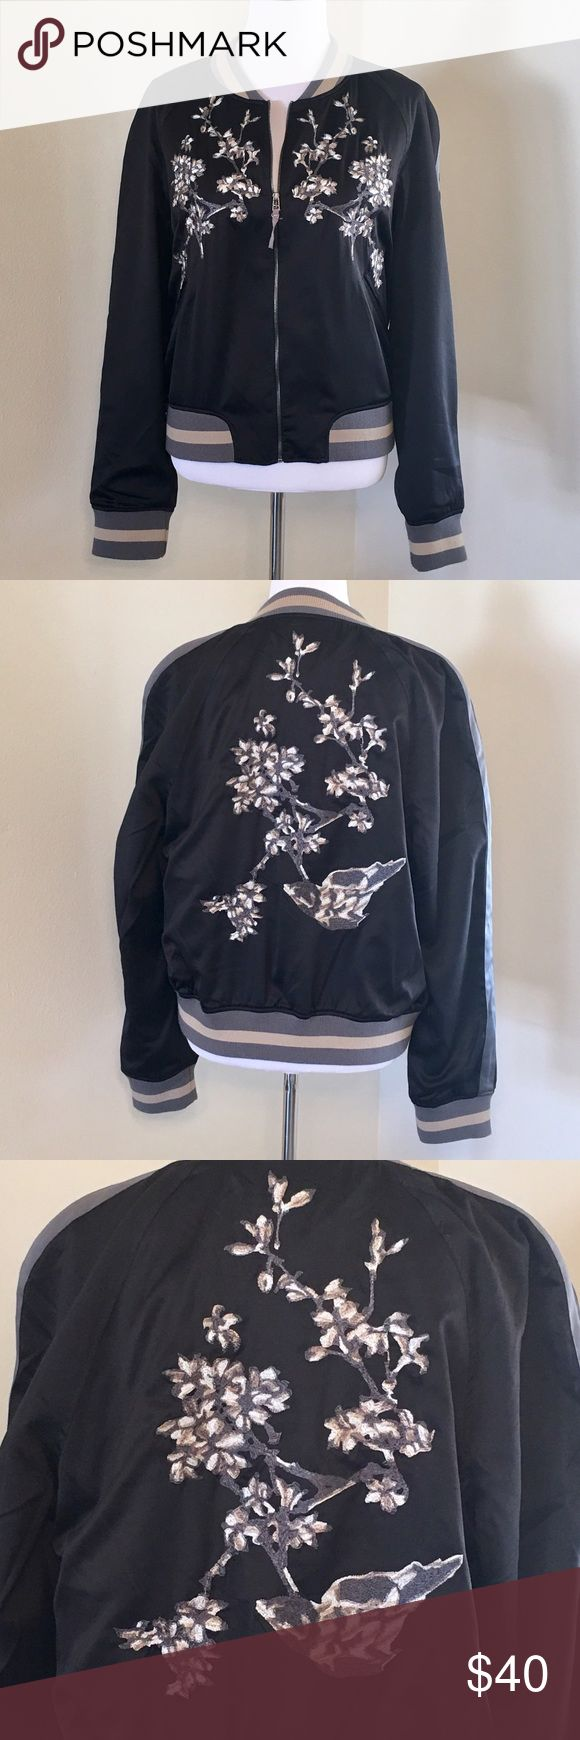 """Groovy Monkey Black Satin Bomber New with tags. Black satin. Grey and tan cuffs. Embroidered floral pattern in white, tan and grey. Two front pockets. Black satin inside. 100% polyester. Size Large. L24"""". Armpit to armpit flat 22"""". Such a groovy brand and a groovy bomber🙌🏼 No trades. No lowball offers. No joke. Price is firm.😊🌹 Groovy Monkey  Jackets & Coats"""